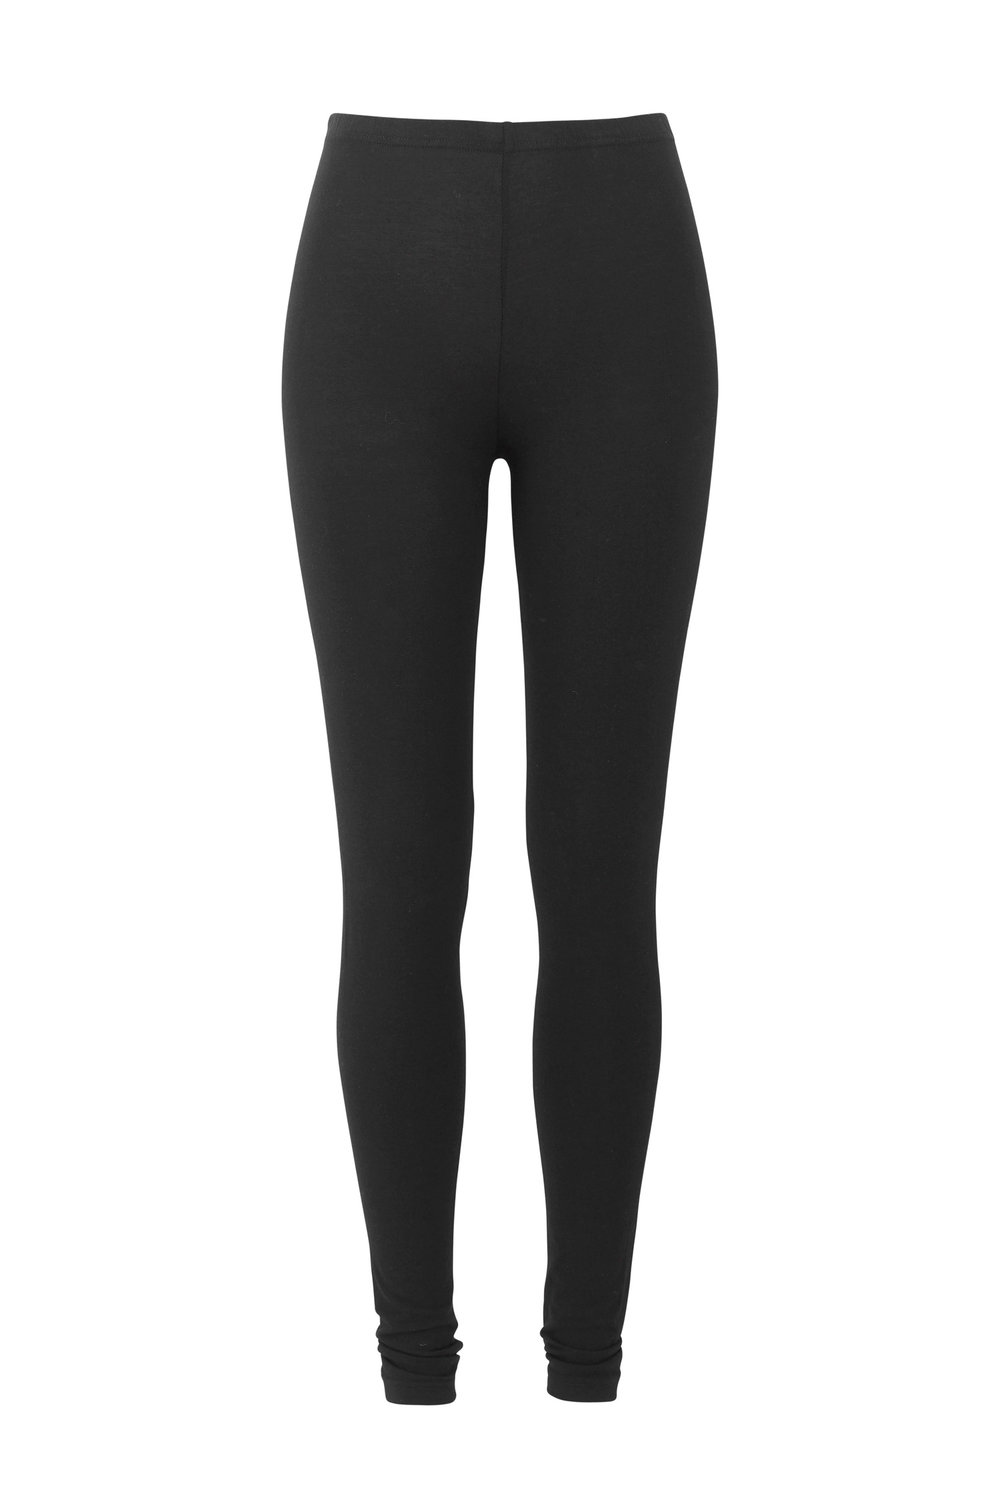 Peopletree Leggings